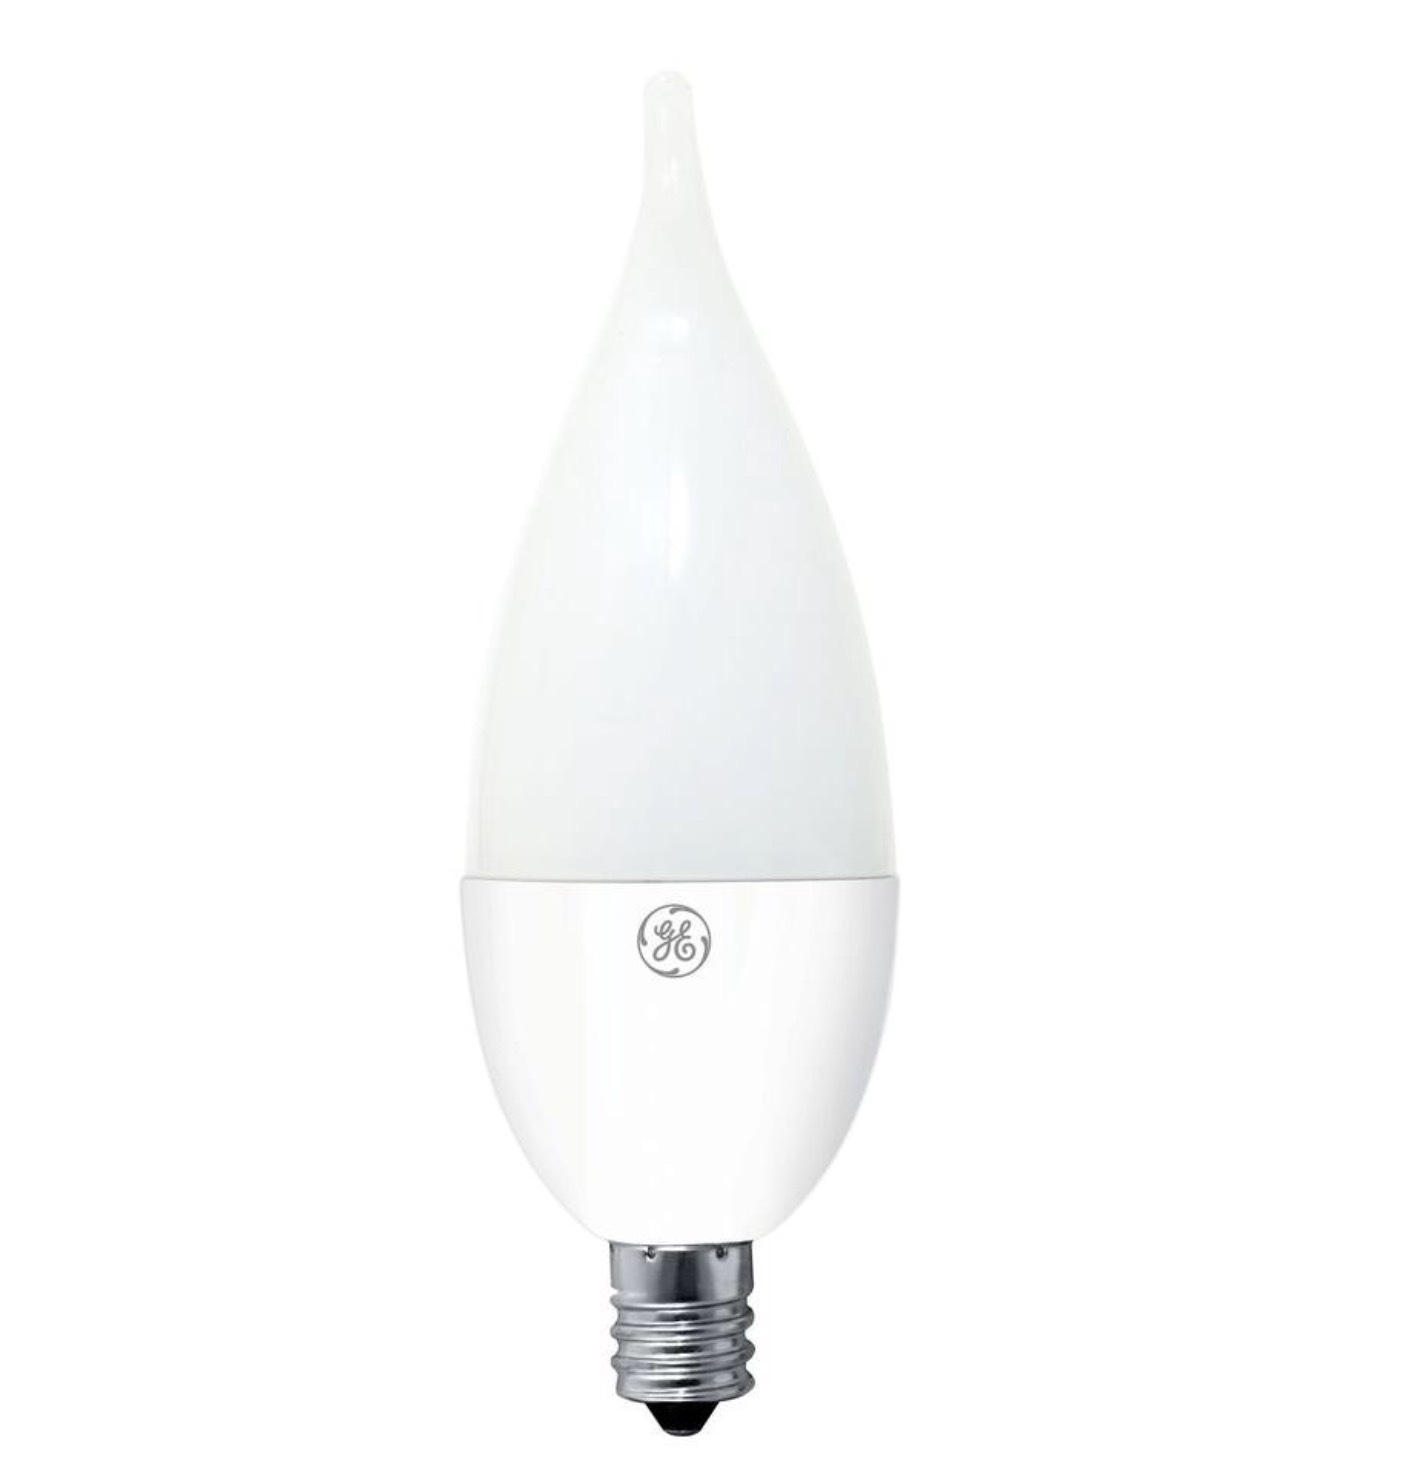 GE 40W Outdoor Soft White Clear Bent Tip Candelabra Base Dimmable LED CAC Bulb image 2